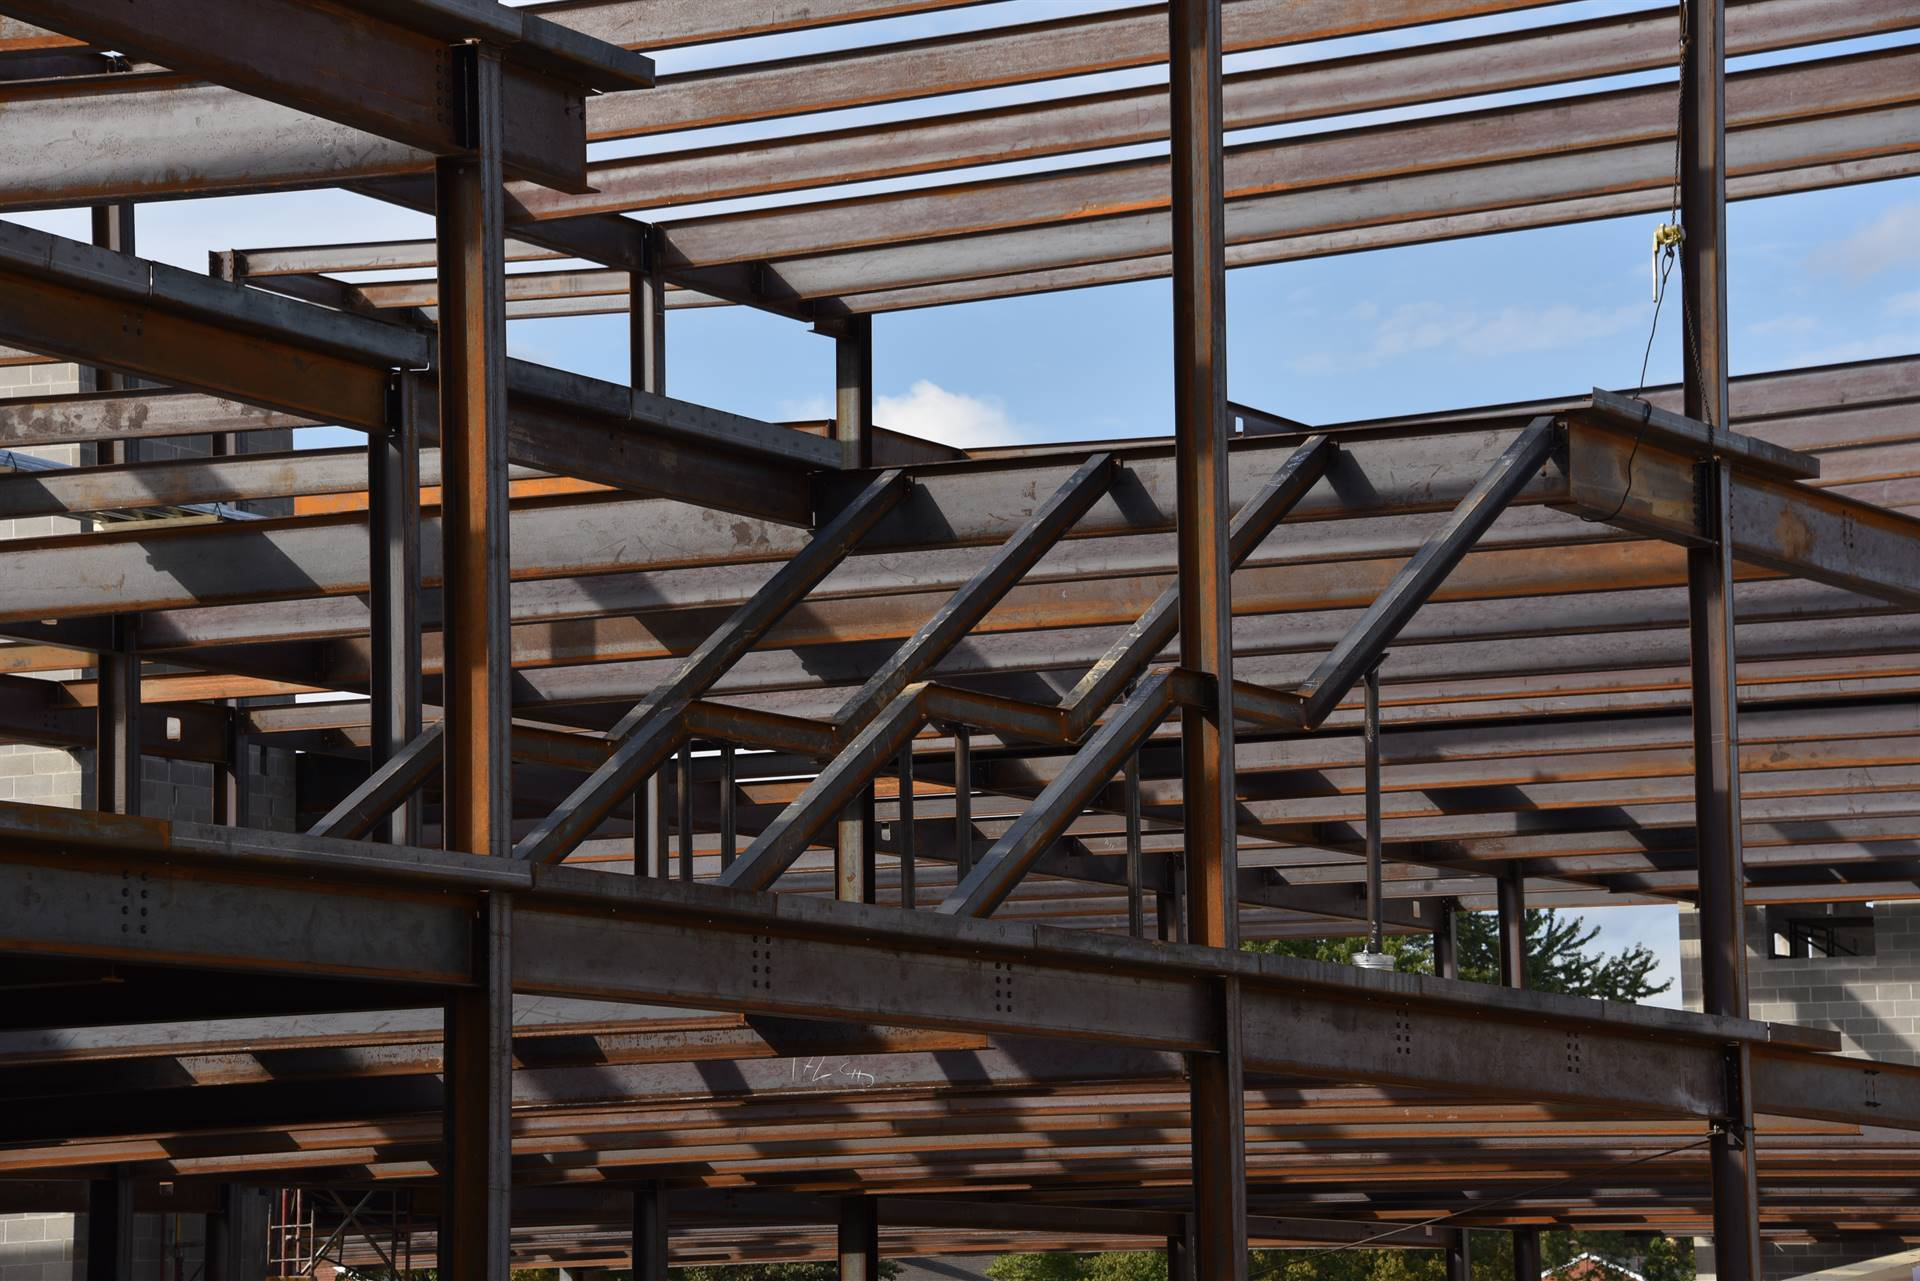 Structural steel installation on the new high school